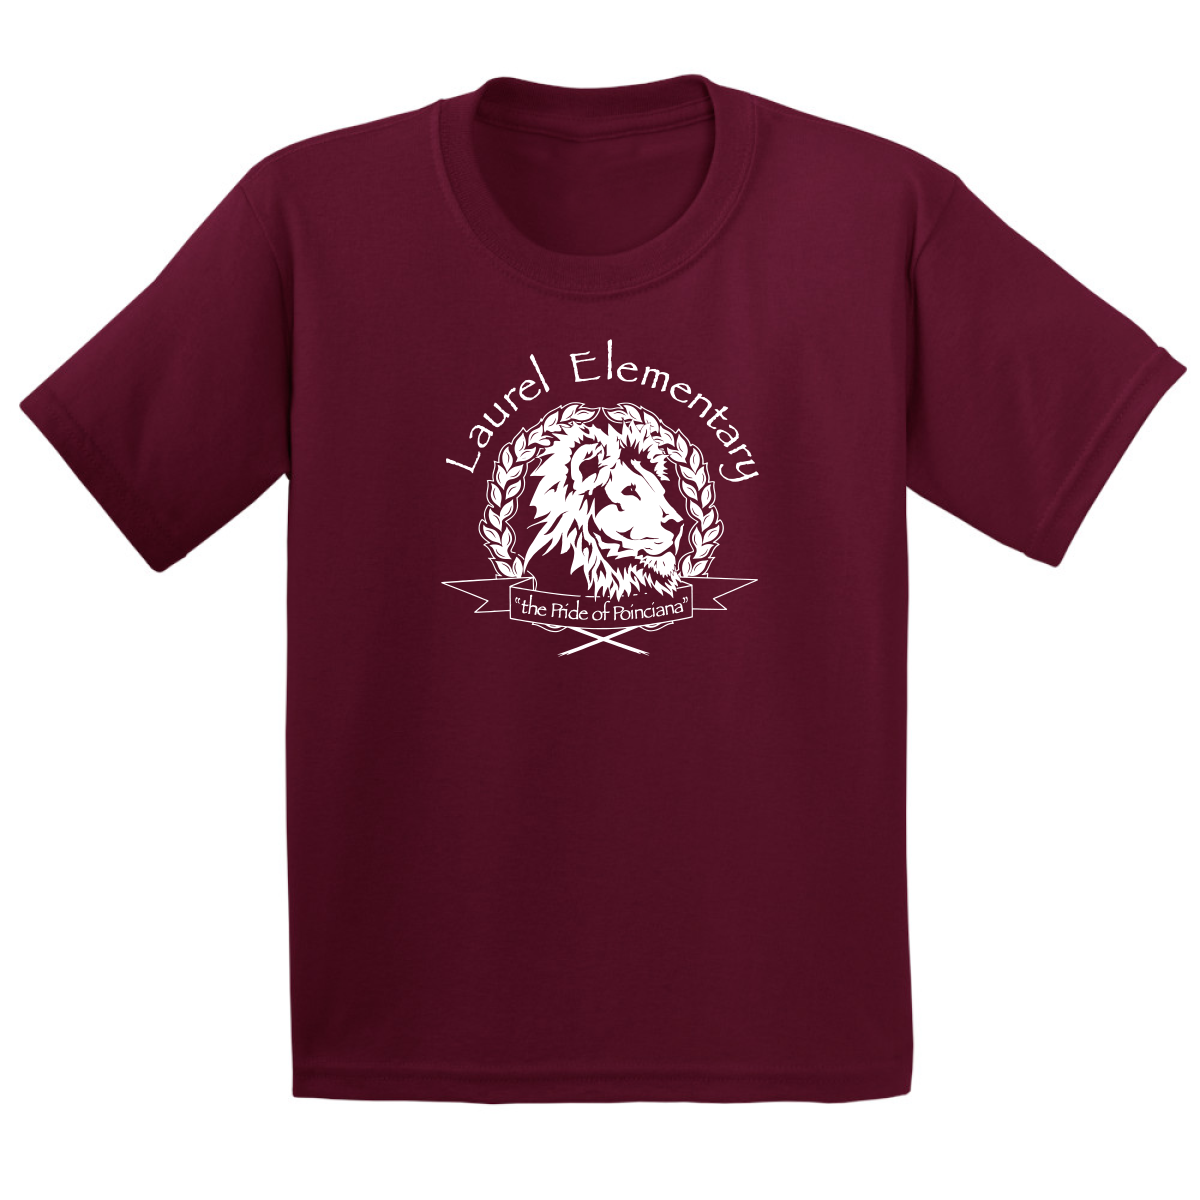 Laurel Elementary T-Shirt - (Youth & Adult Sizes) - Maroon